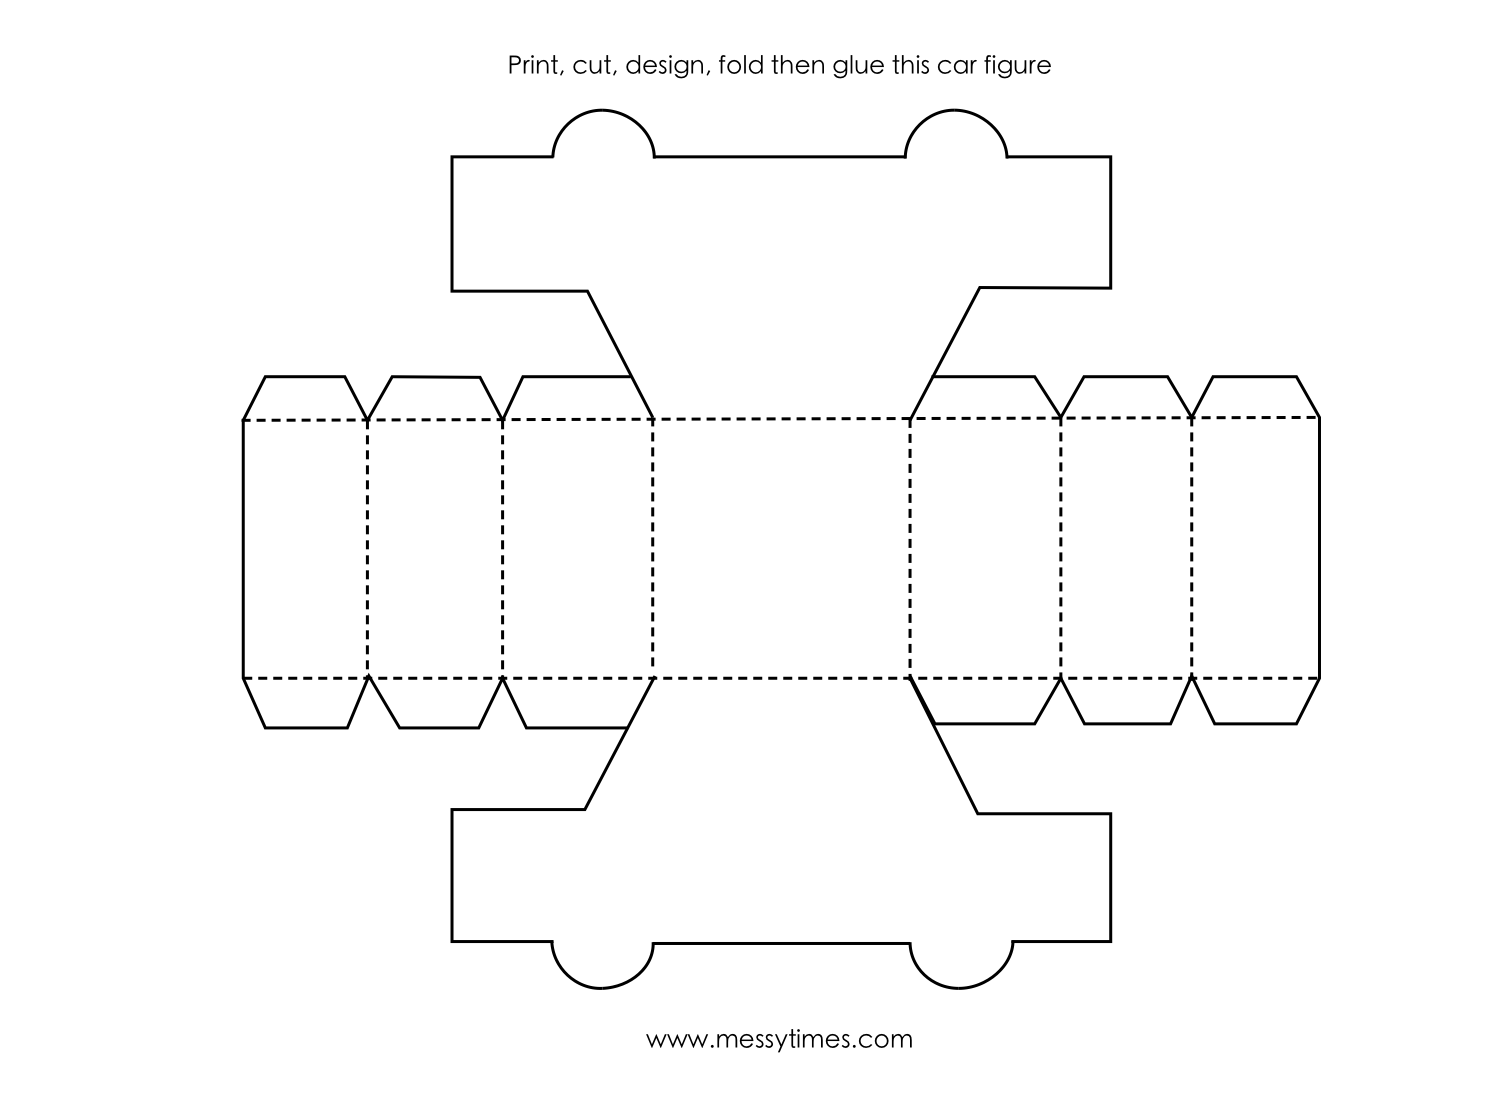 A 3d Car Object To Cut Design Fold And Glue Together